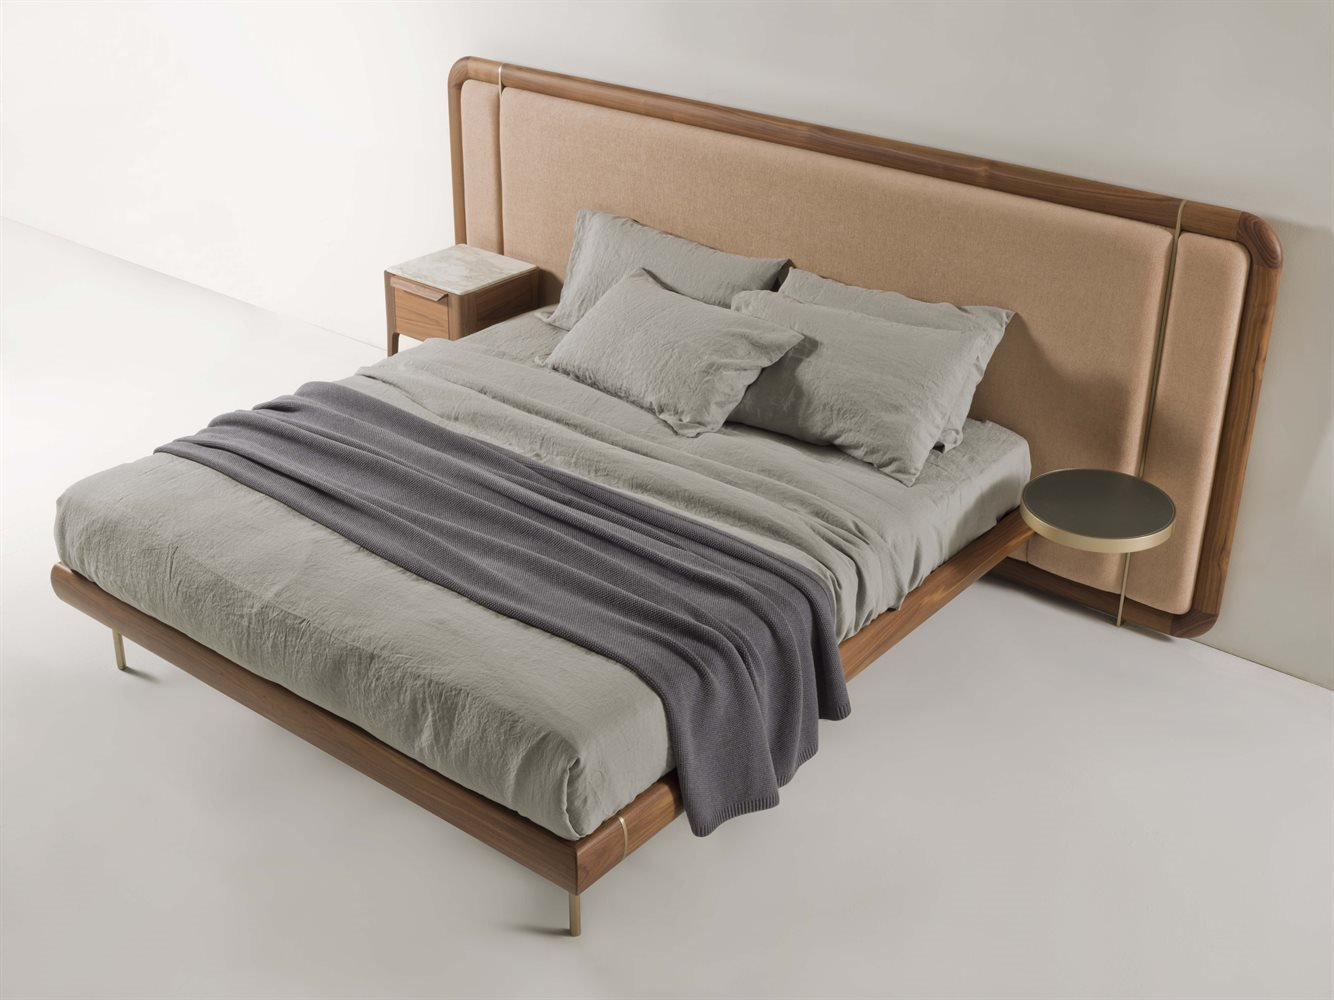 Killian Bed from Porada, designed by M. Marconato and T. Zappa